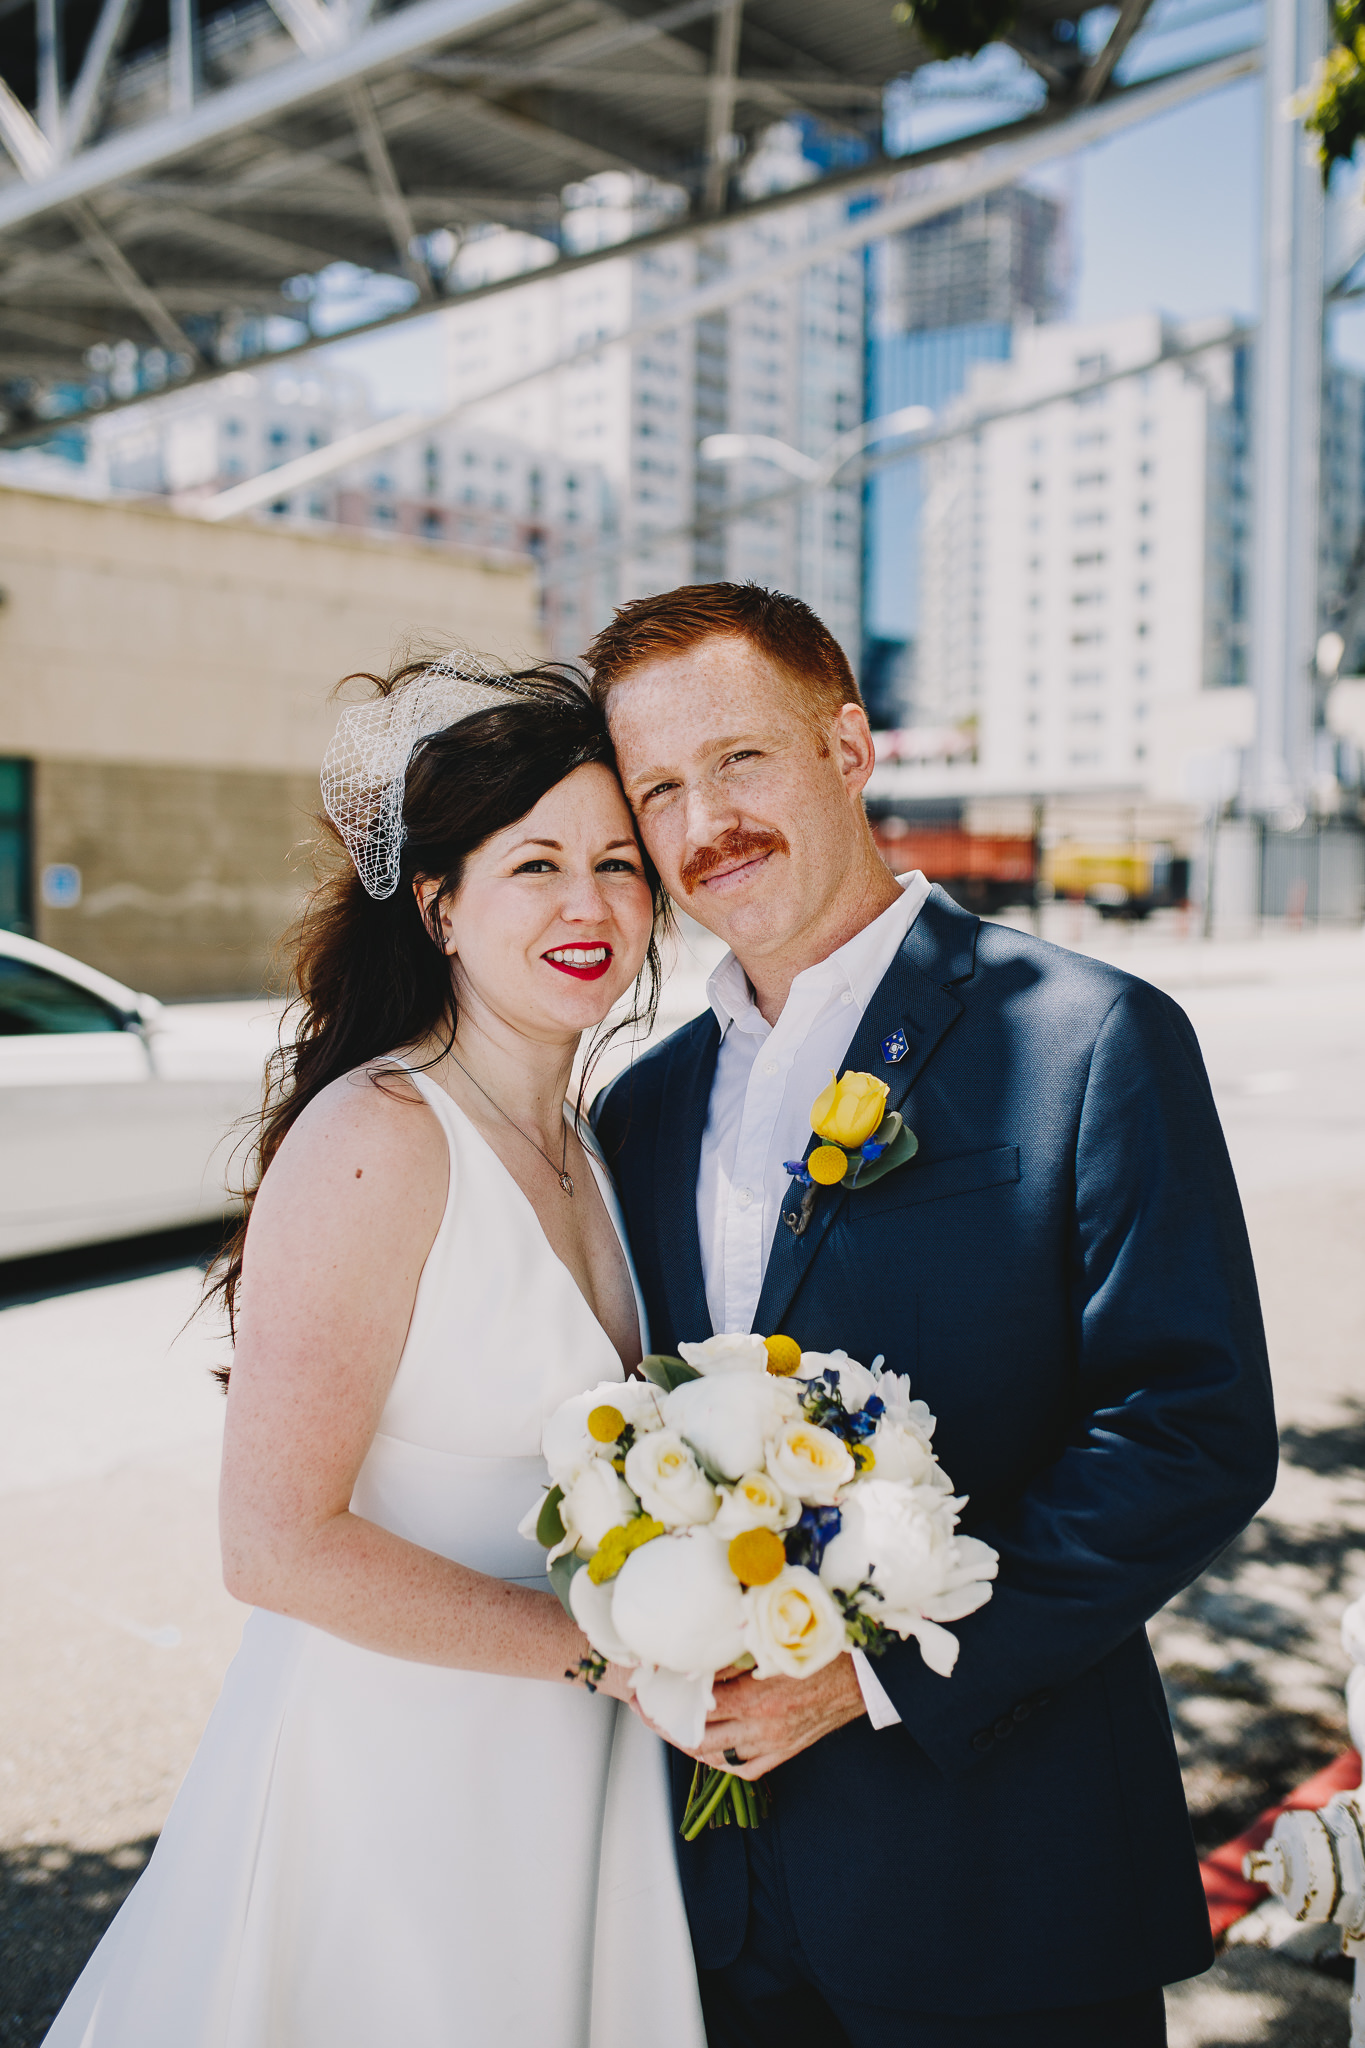 Archer Inspired Photography SF City Hall Elopement Wedding Lifestyle Documentary Affordable Photographer-328.jpg